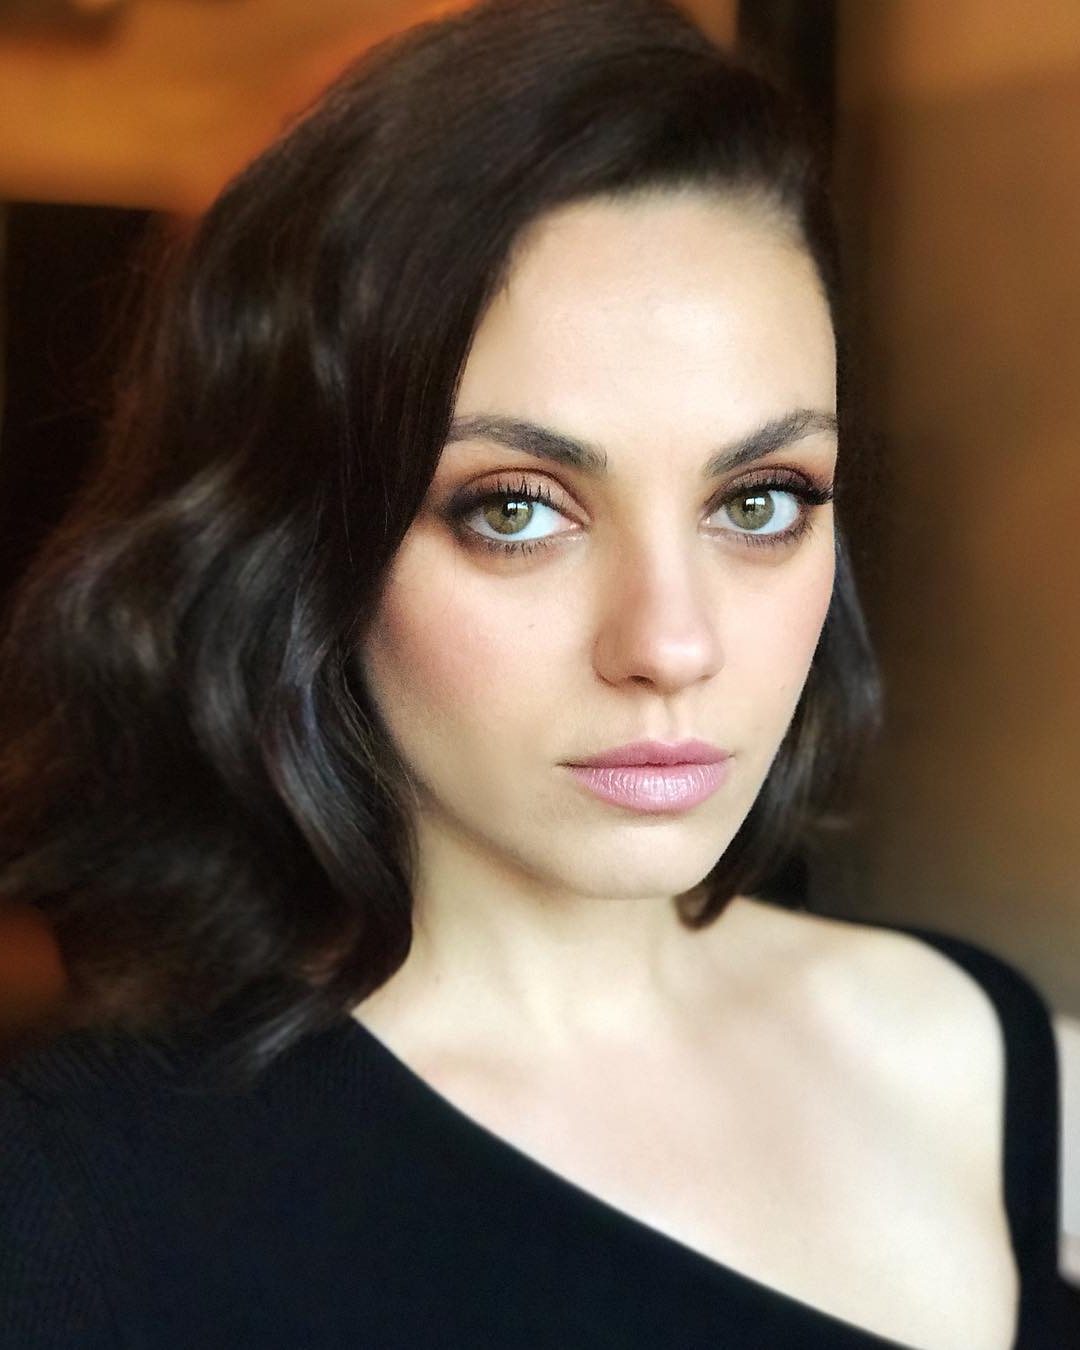 Mila Kunis Got Her Shortest Haircut Ever And We're Obsessed Pertaining To Mila Kunis Short Hairstyles (View 13 of 25)